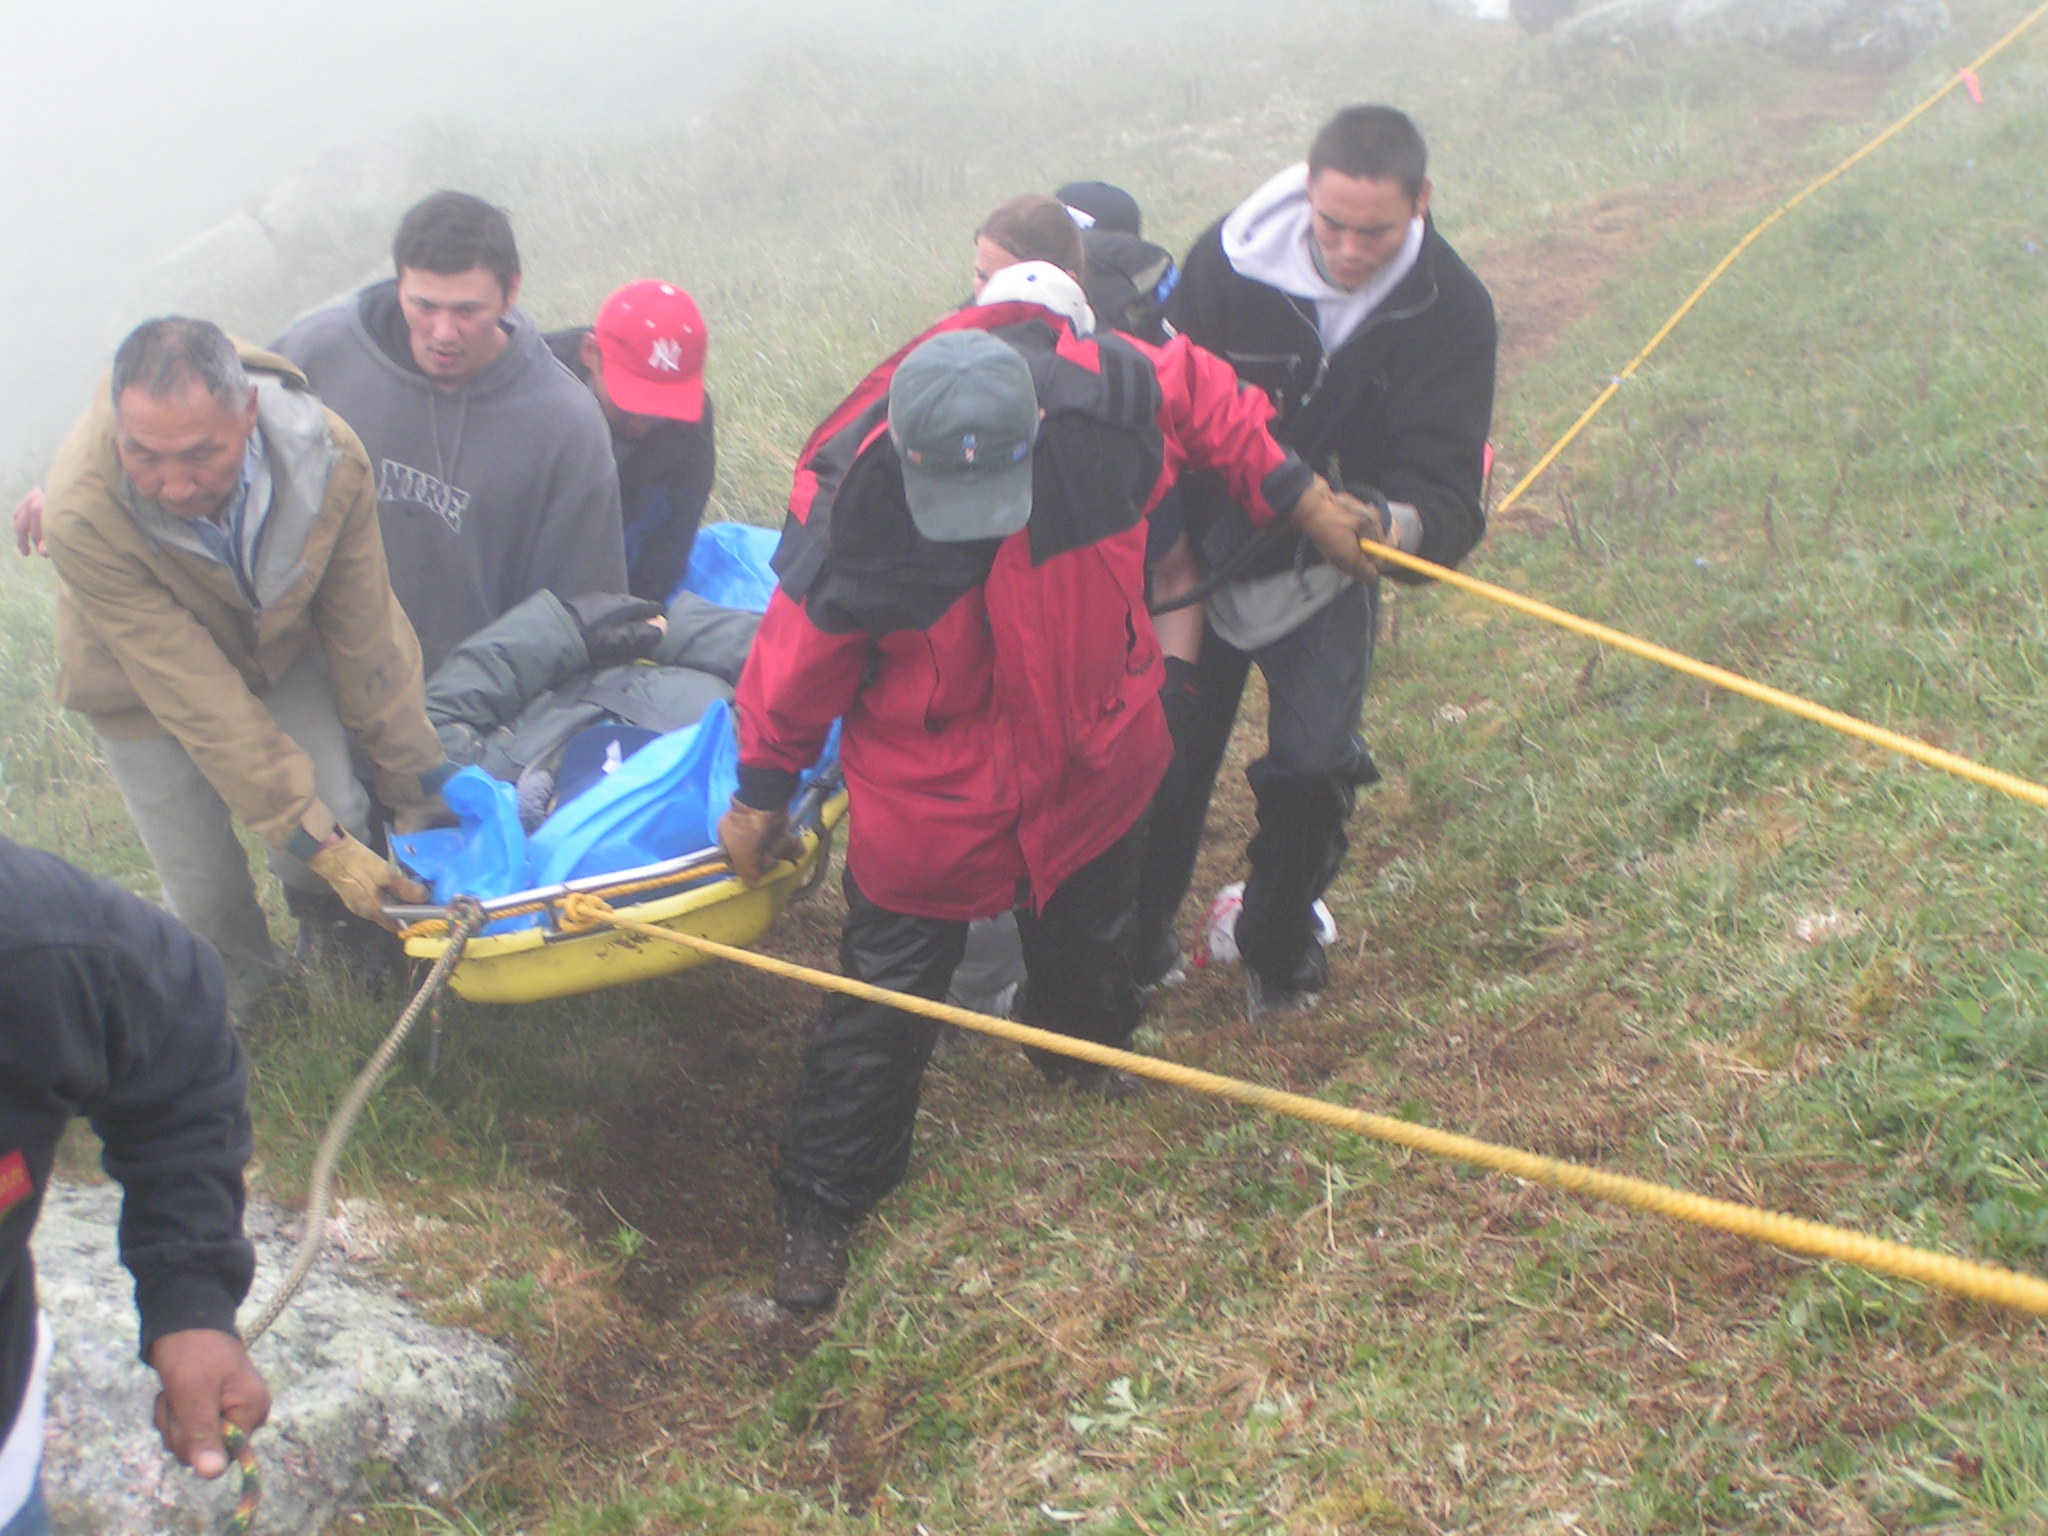 Chico helps a team as it carries the oldest Elder of the King Islanders the top of the island so he could be helicopter-evacuated after his health deteriorated.  A storm delayed the rescue for two days. King Island, 2004.